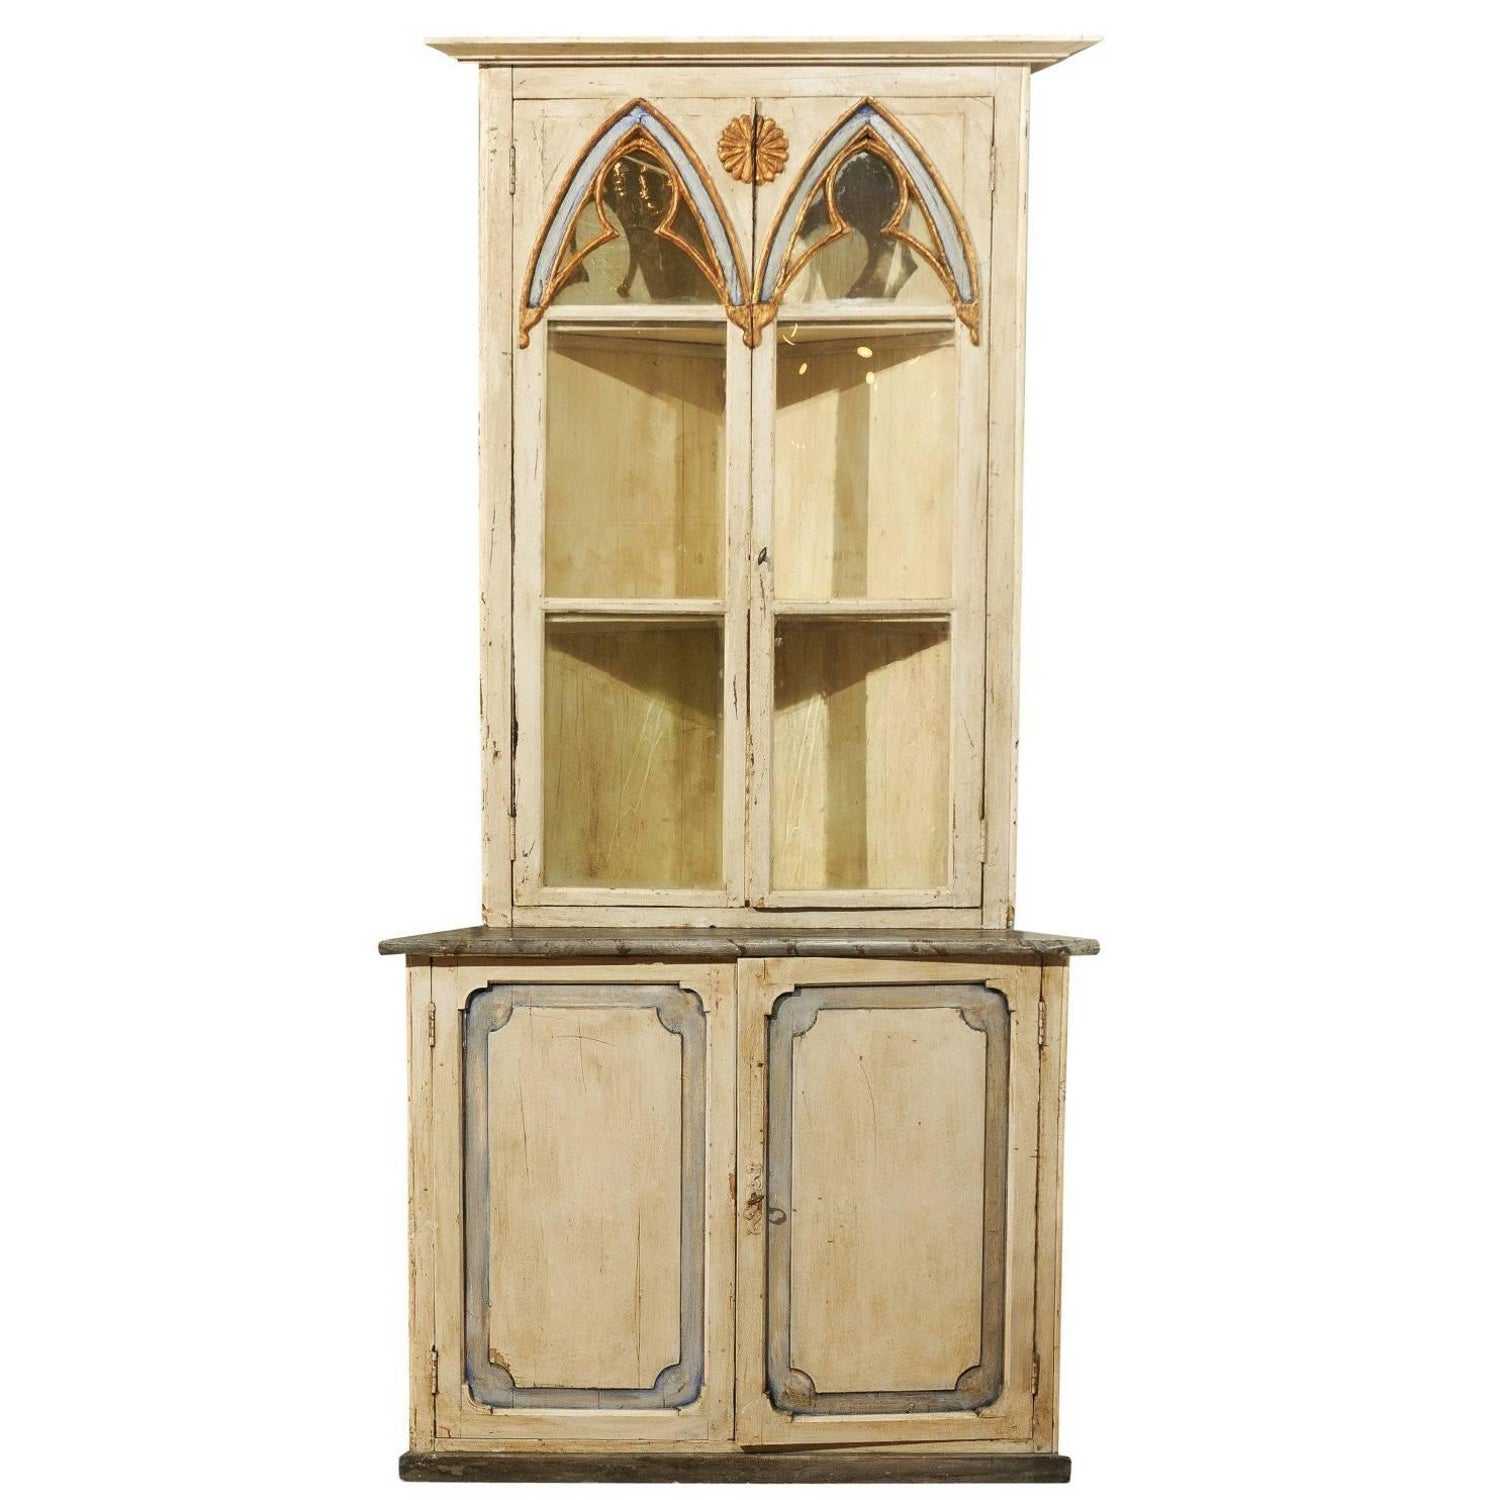 Gothic Revival Case Pieces and Storage Cabinets - 62 For Sale at 1stdibs